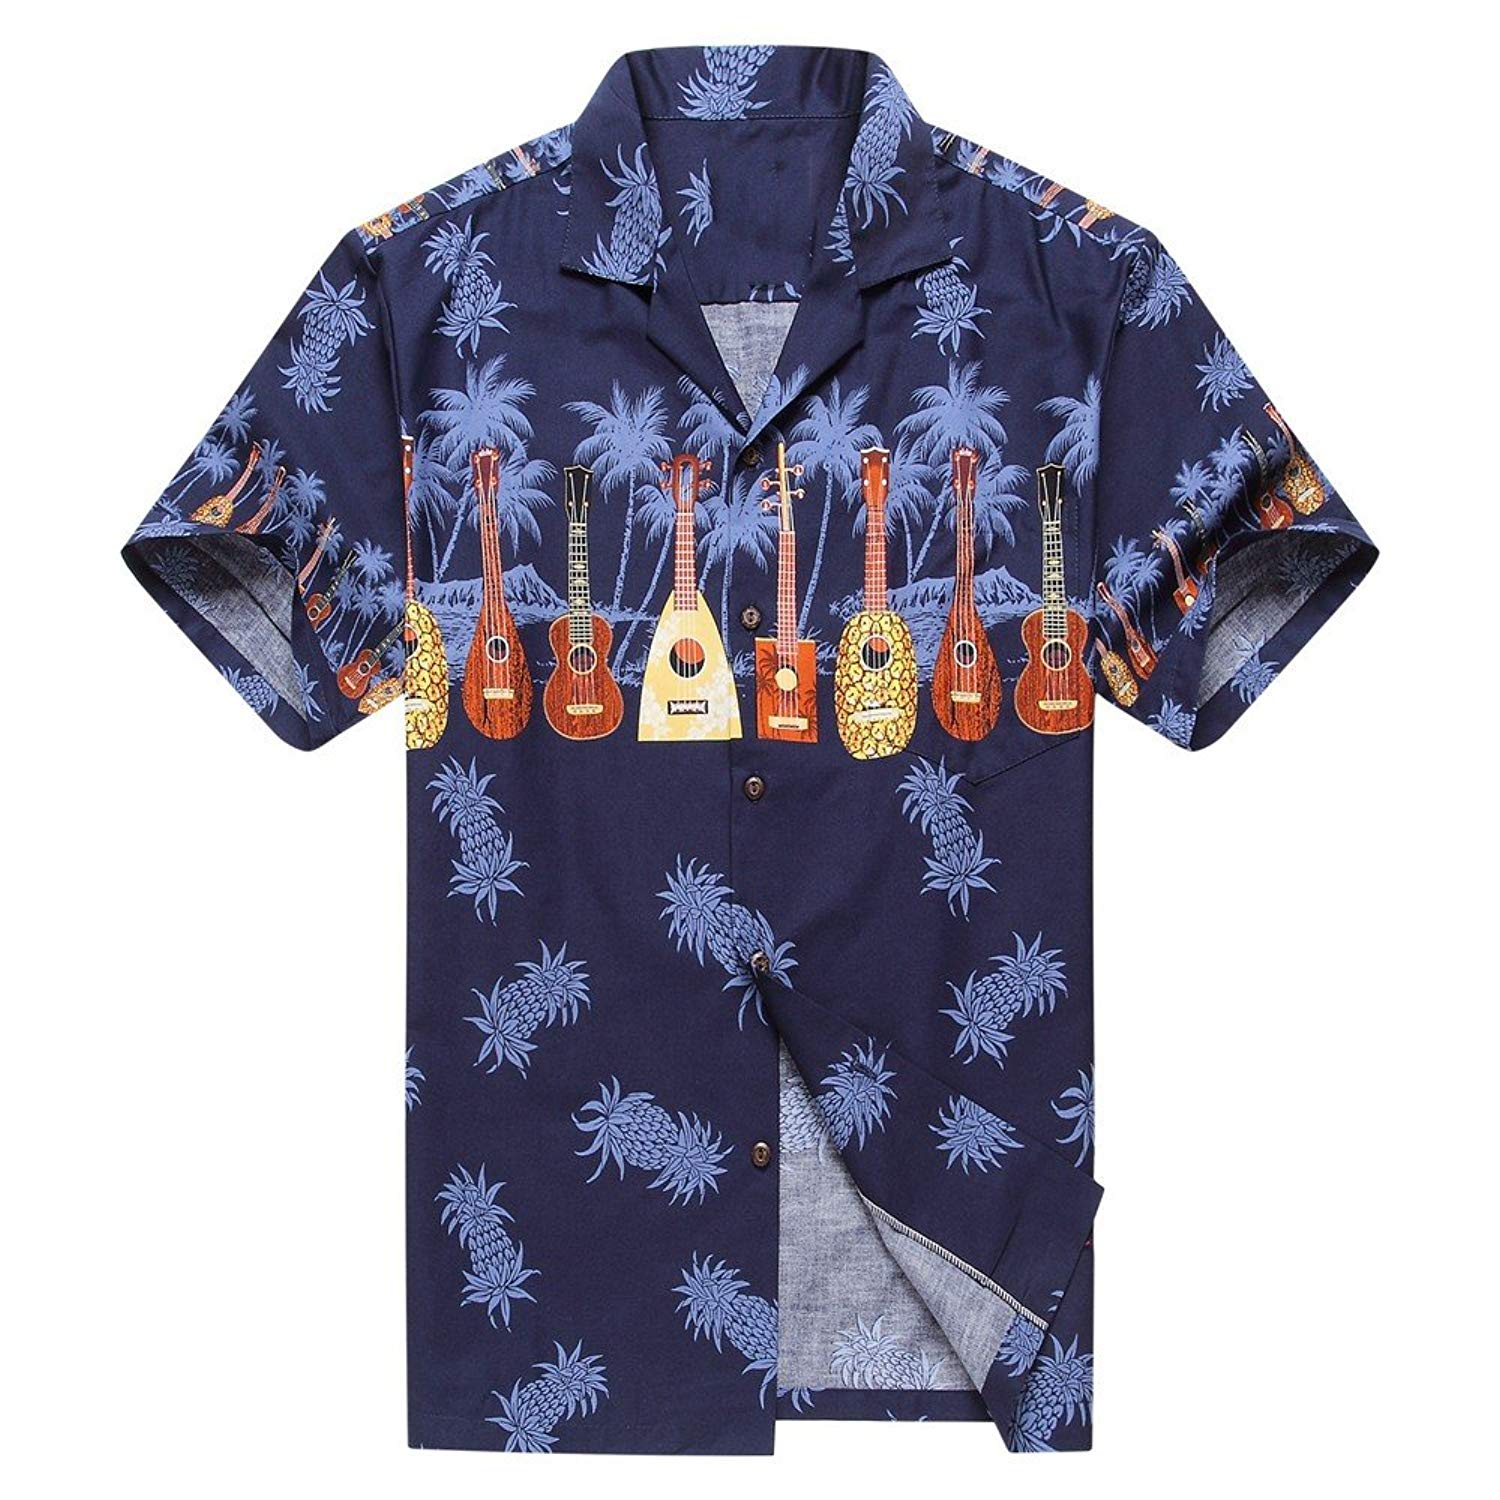 4544d19c Made in Hawaii Men's Hawaiian Shirt Aloha Shirt Cross Ukulele Music in Navy